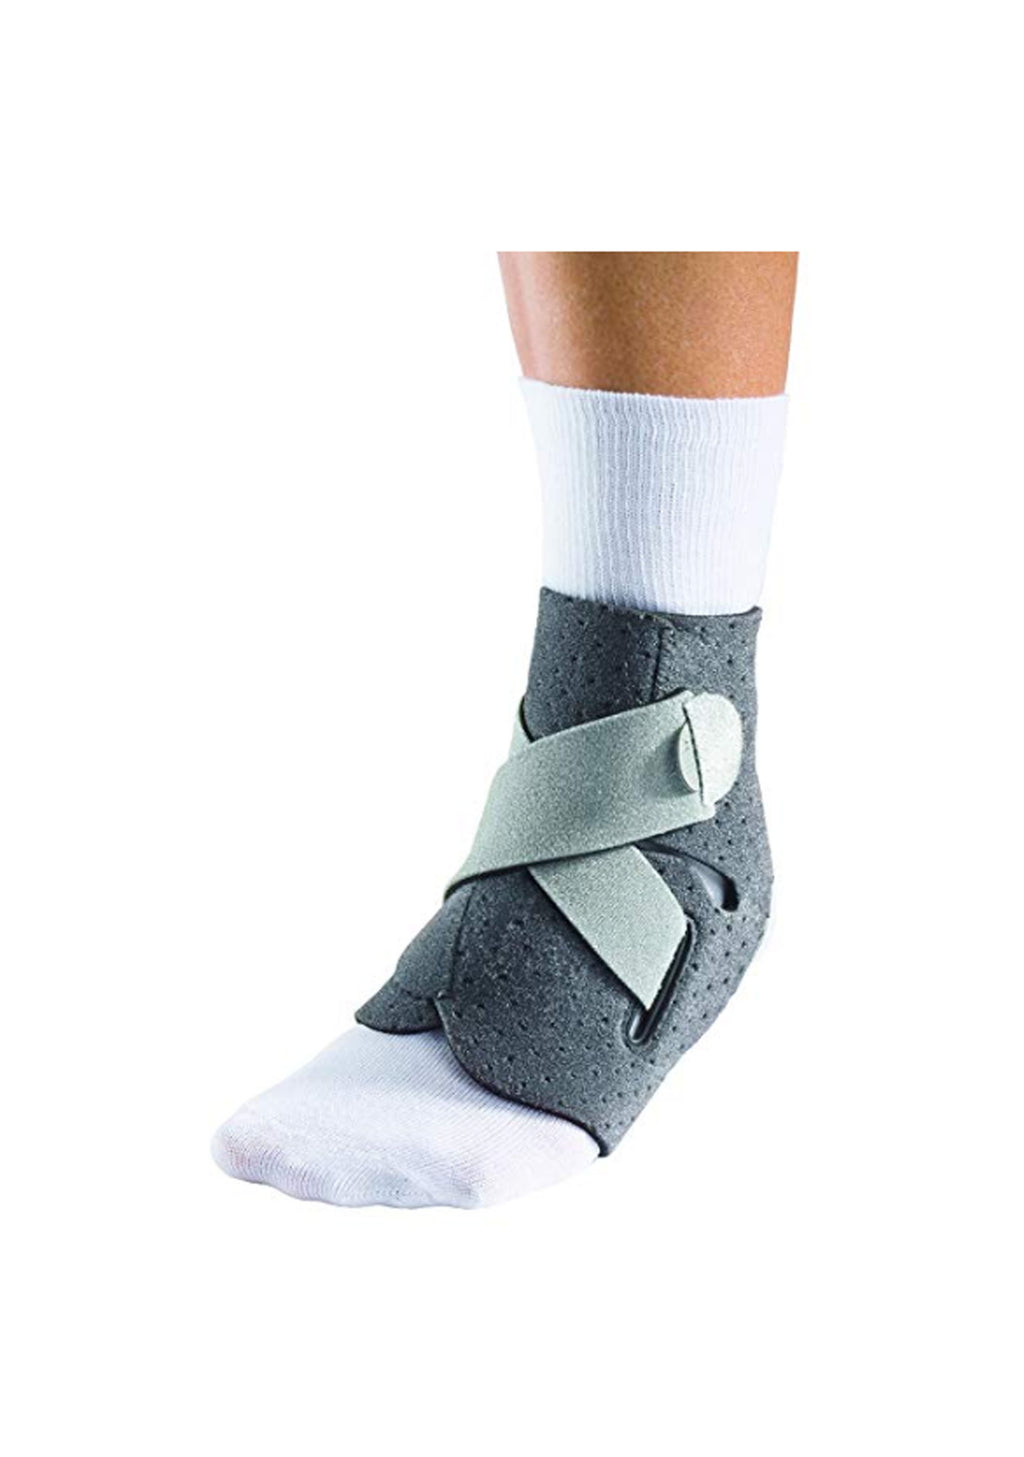 MUELLER ADJUST-TO-FIT ANKLE SUPPORT <BR> 074676631707